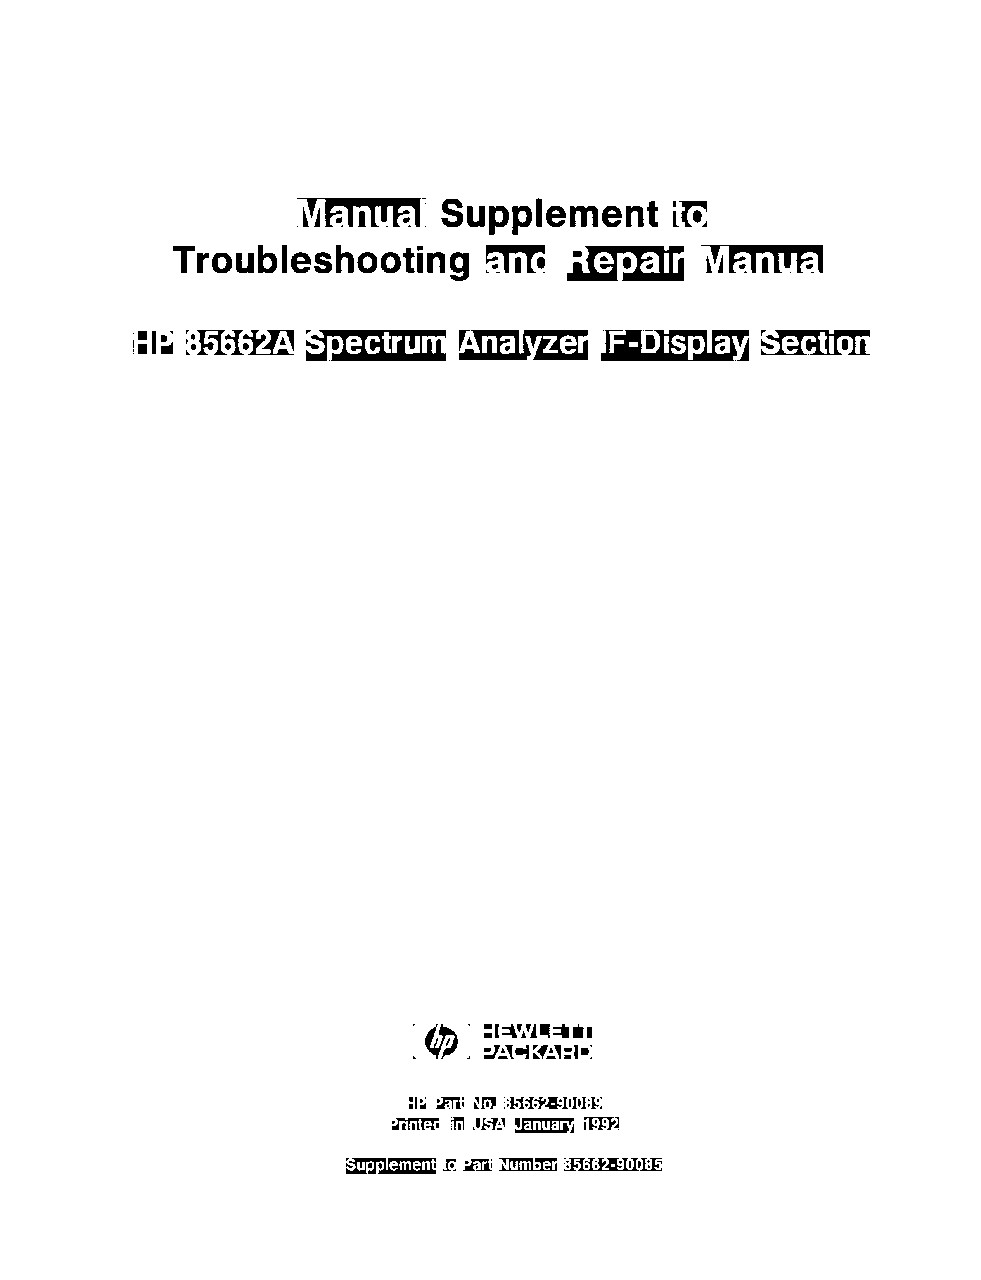 85662A Display Section Manual Supplement to Troubleshooting and ...